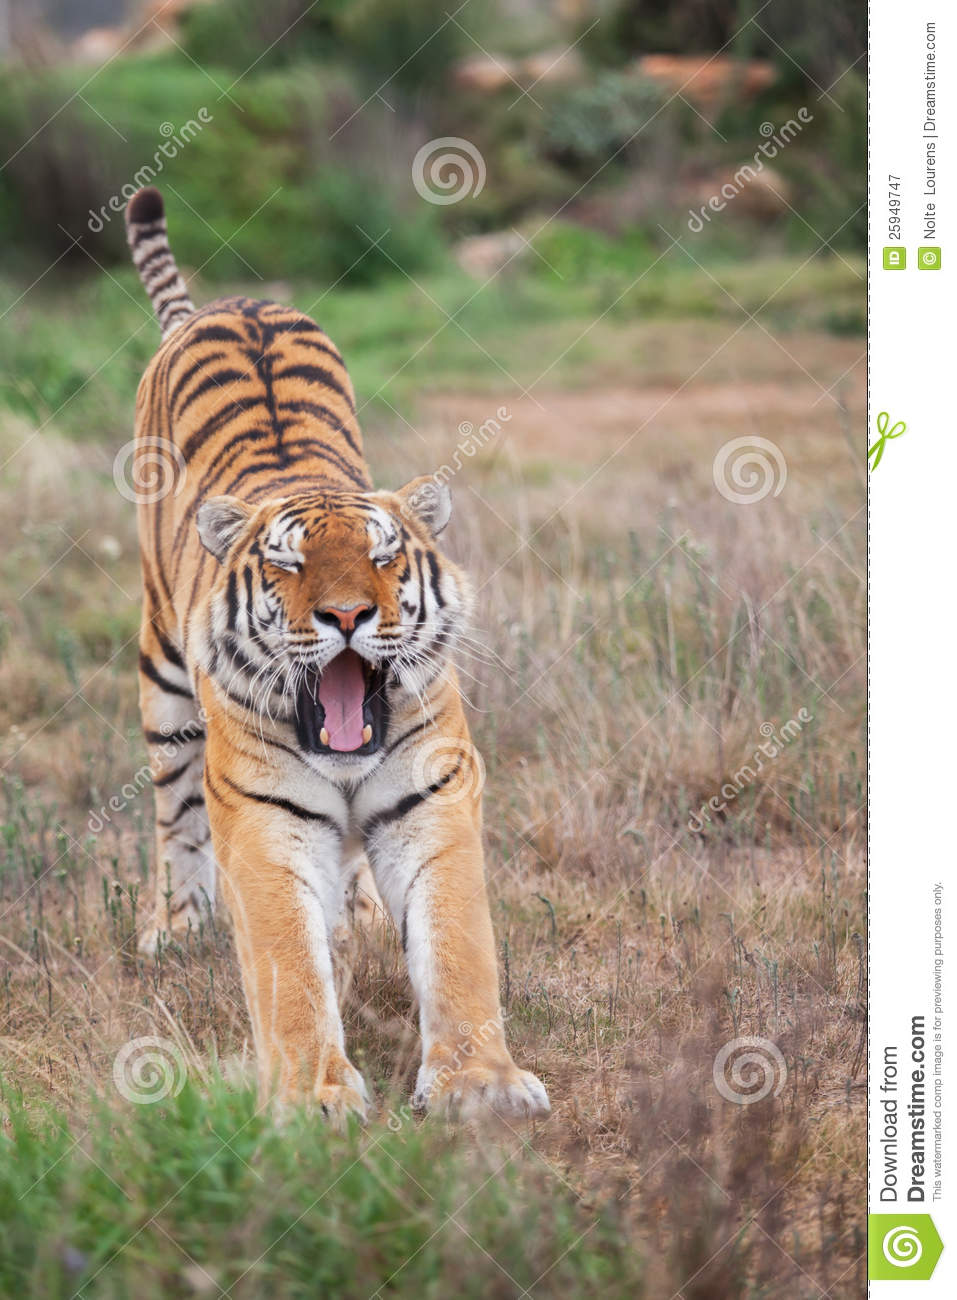 60 best images about Tiger Mutations on Pinterest ... |Bengal Tiger Tired